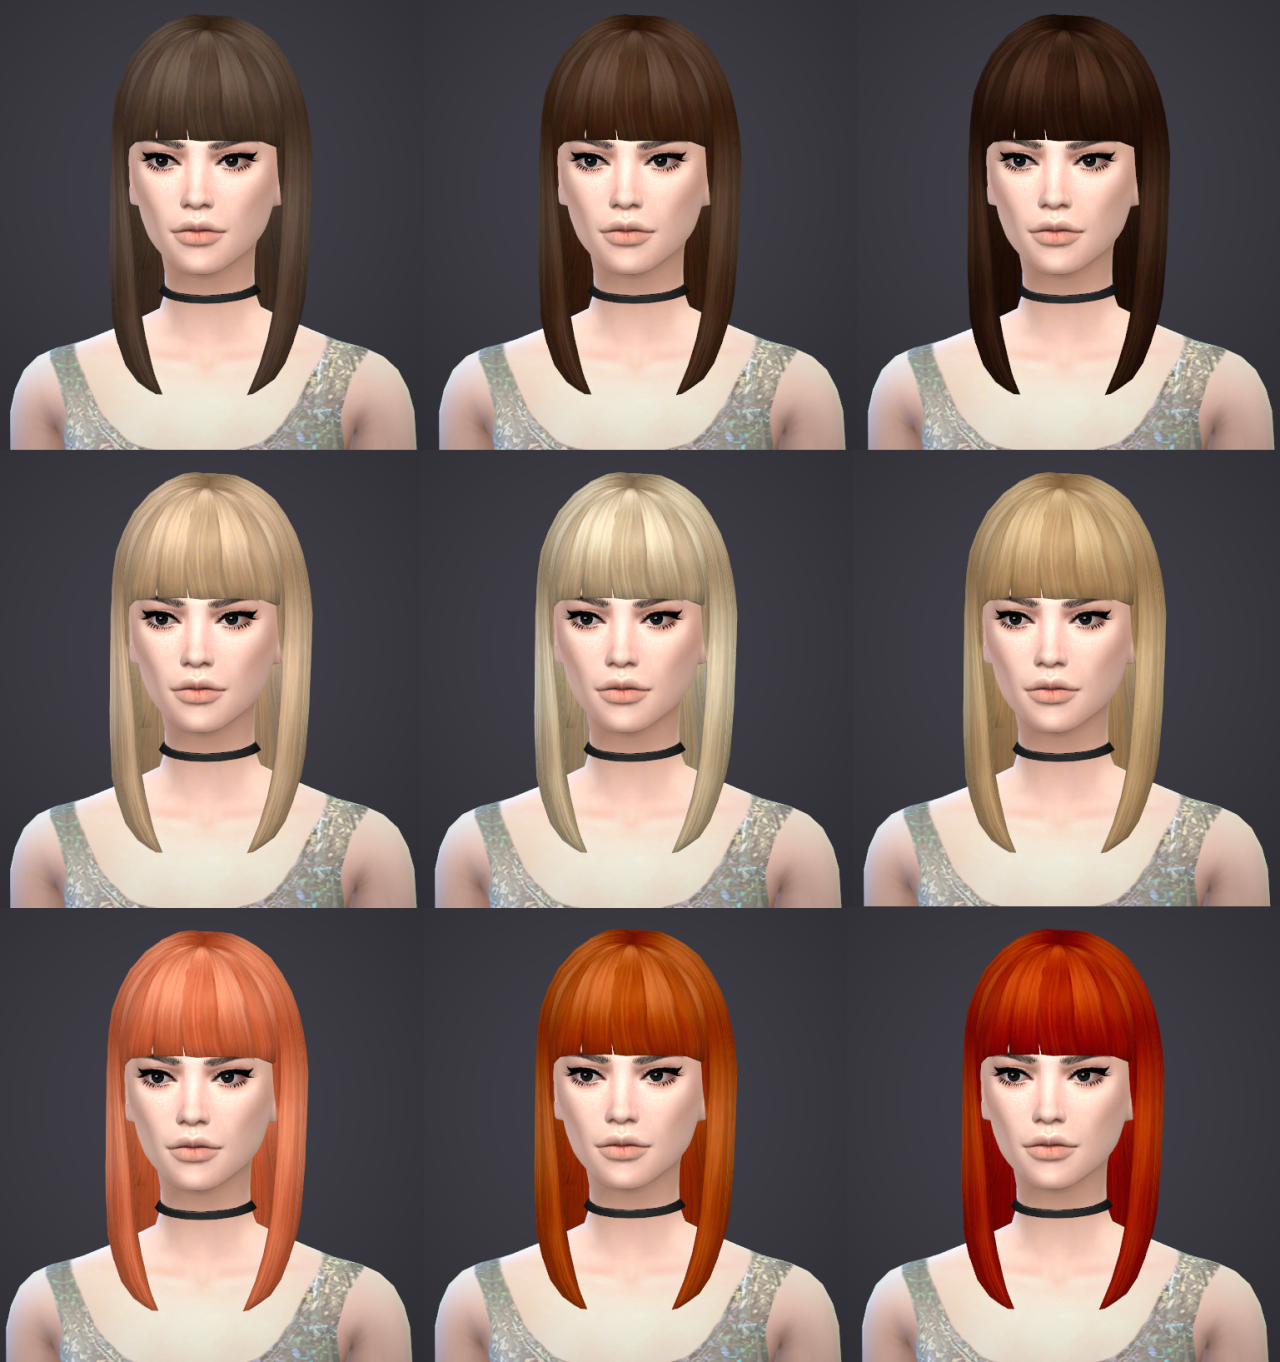 Mid Straight Bangs Hair for Females by Salem2342